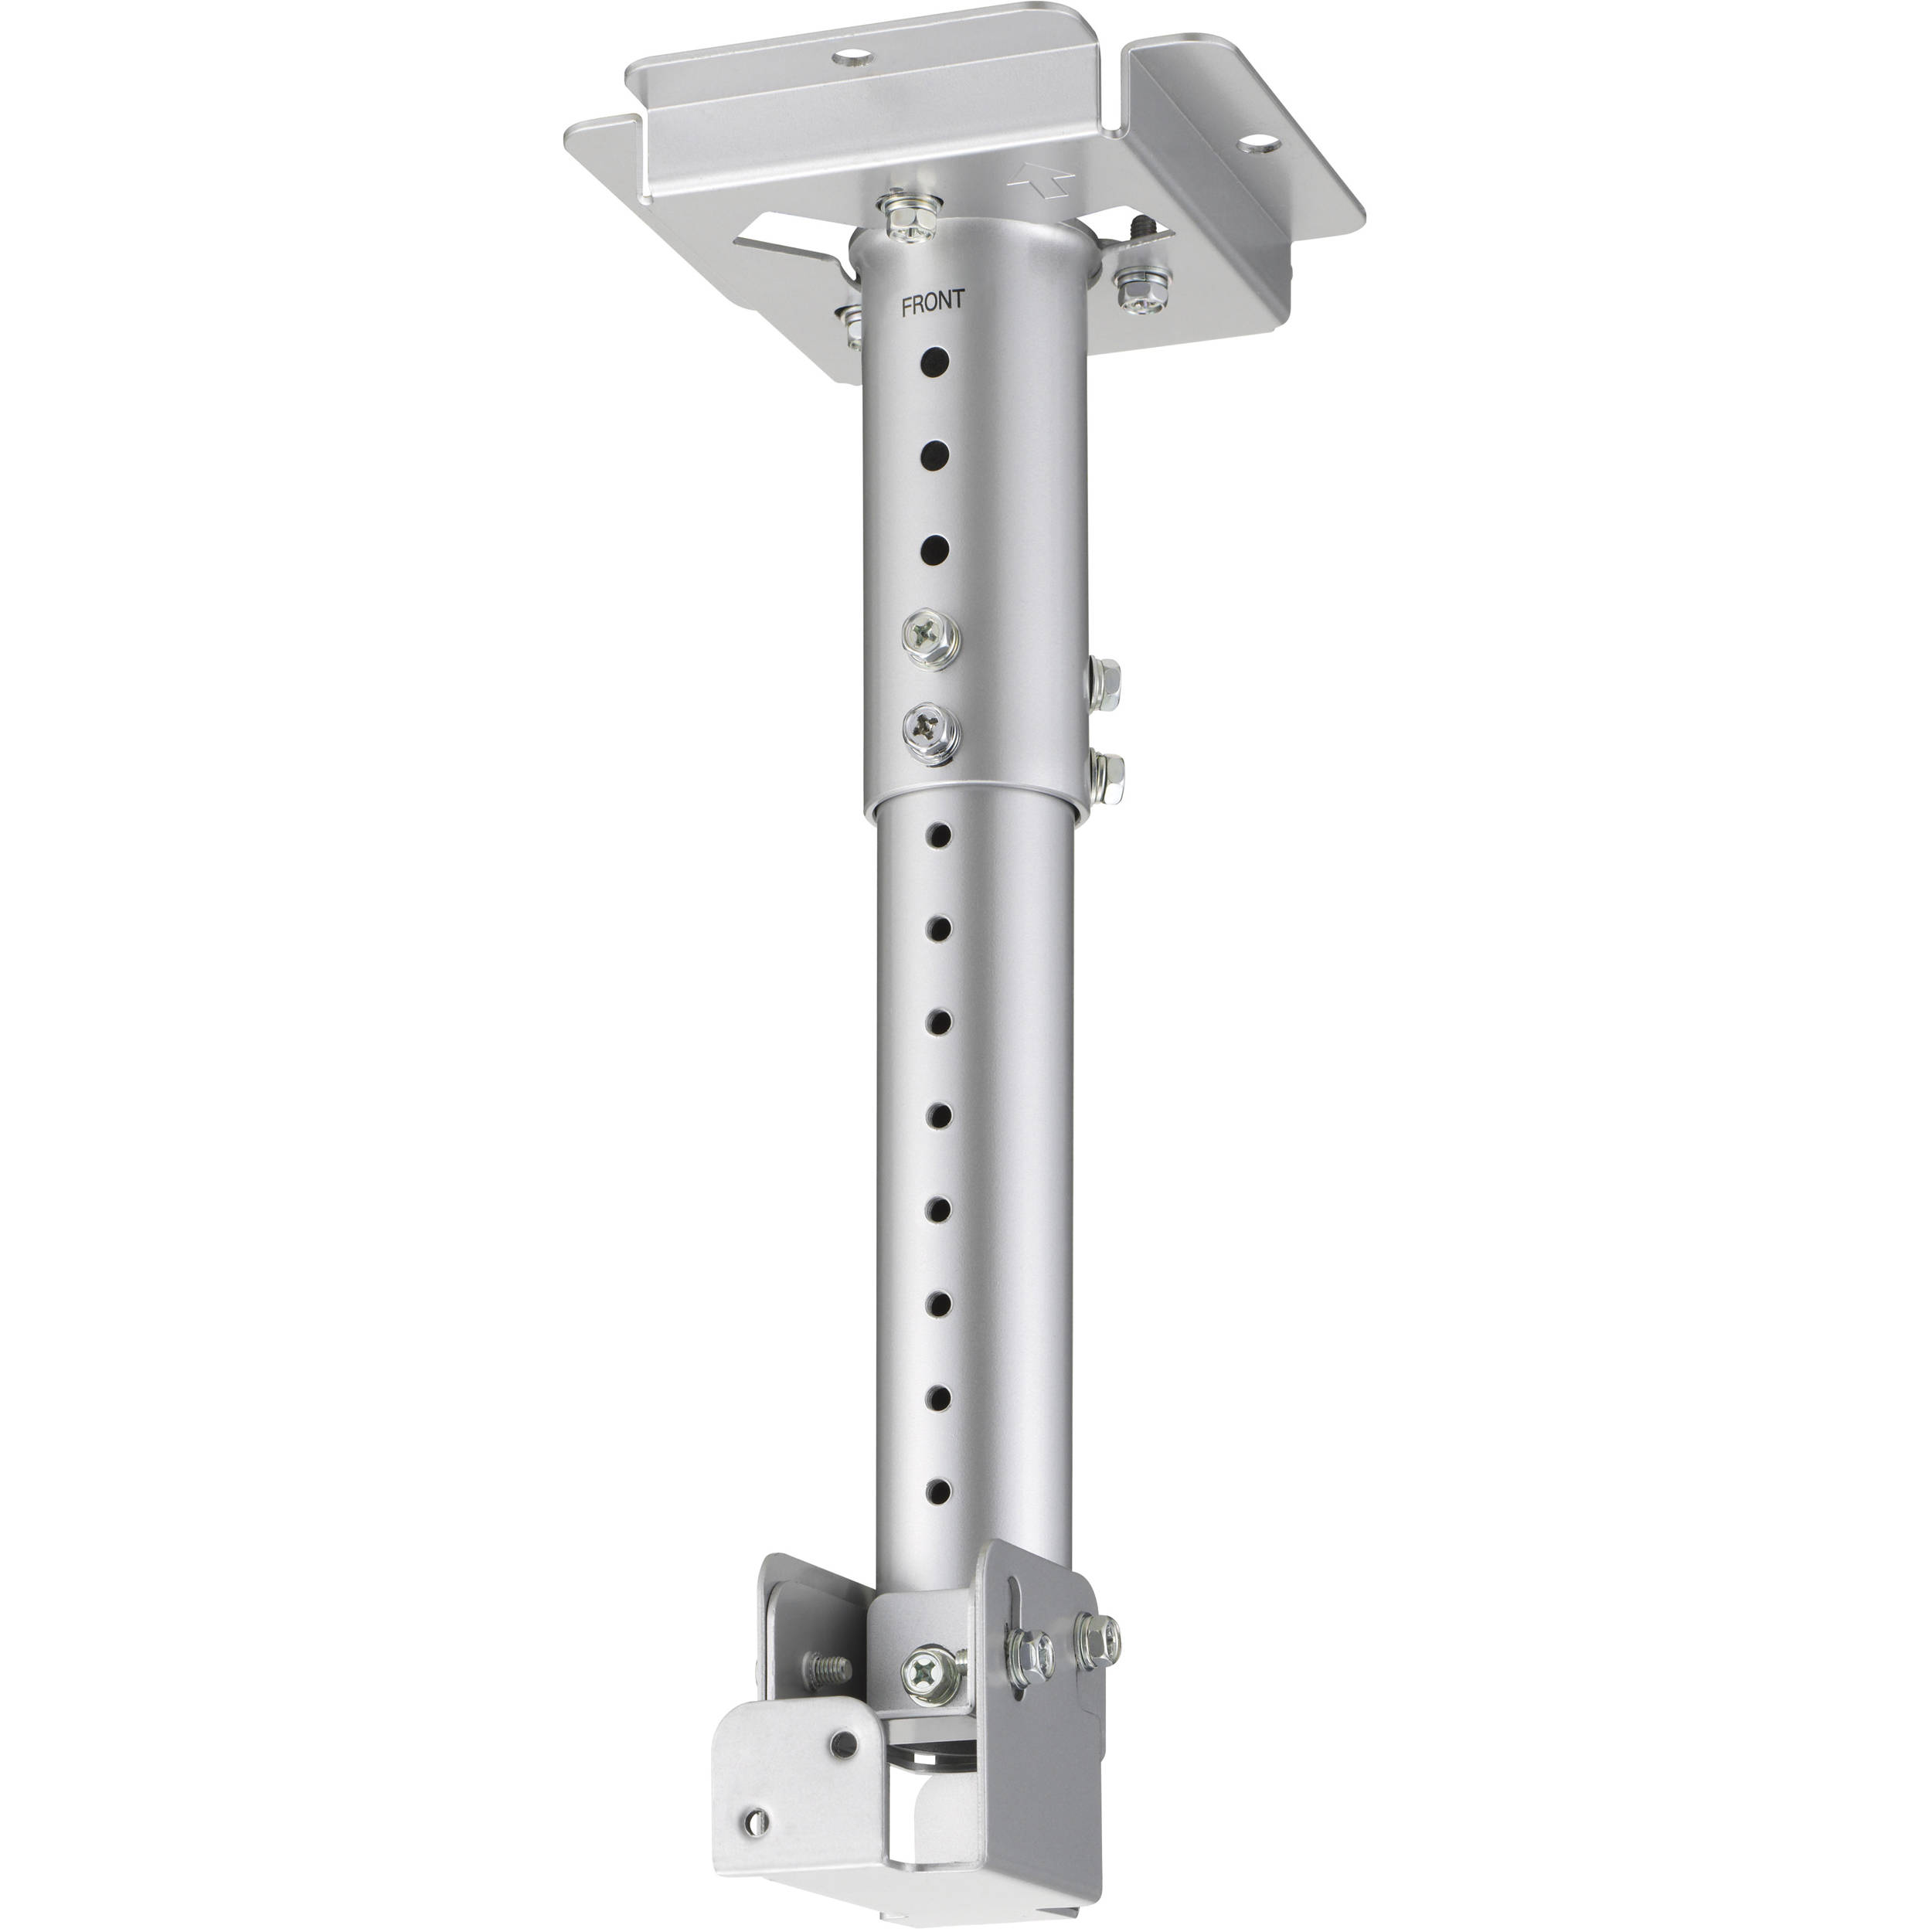 panasonic et pkl100h ceiling mount bracket for high ceilings. Black Bedroom Furniture Sets. Home Design Ideas